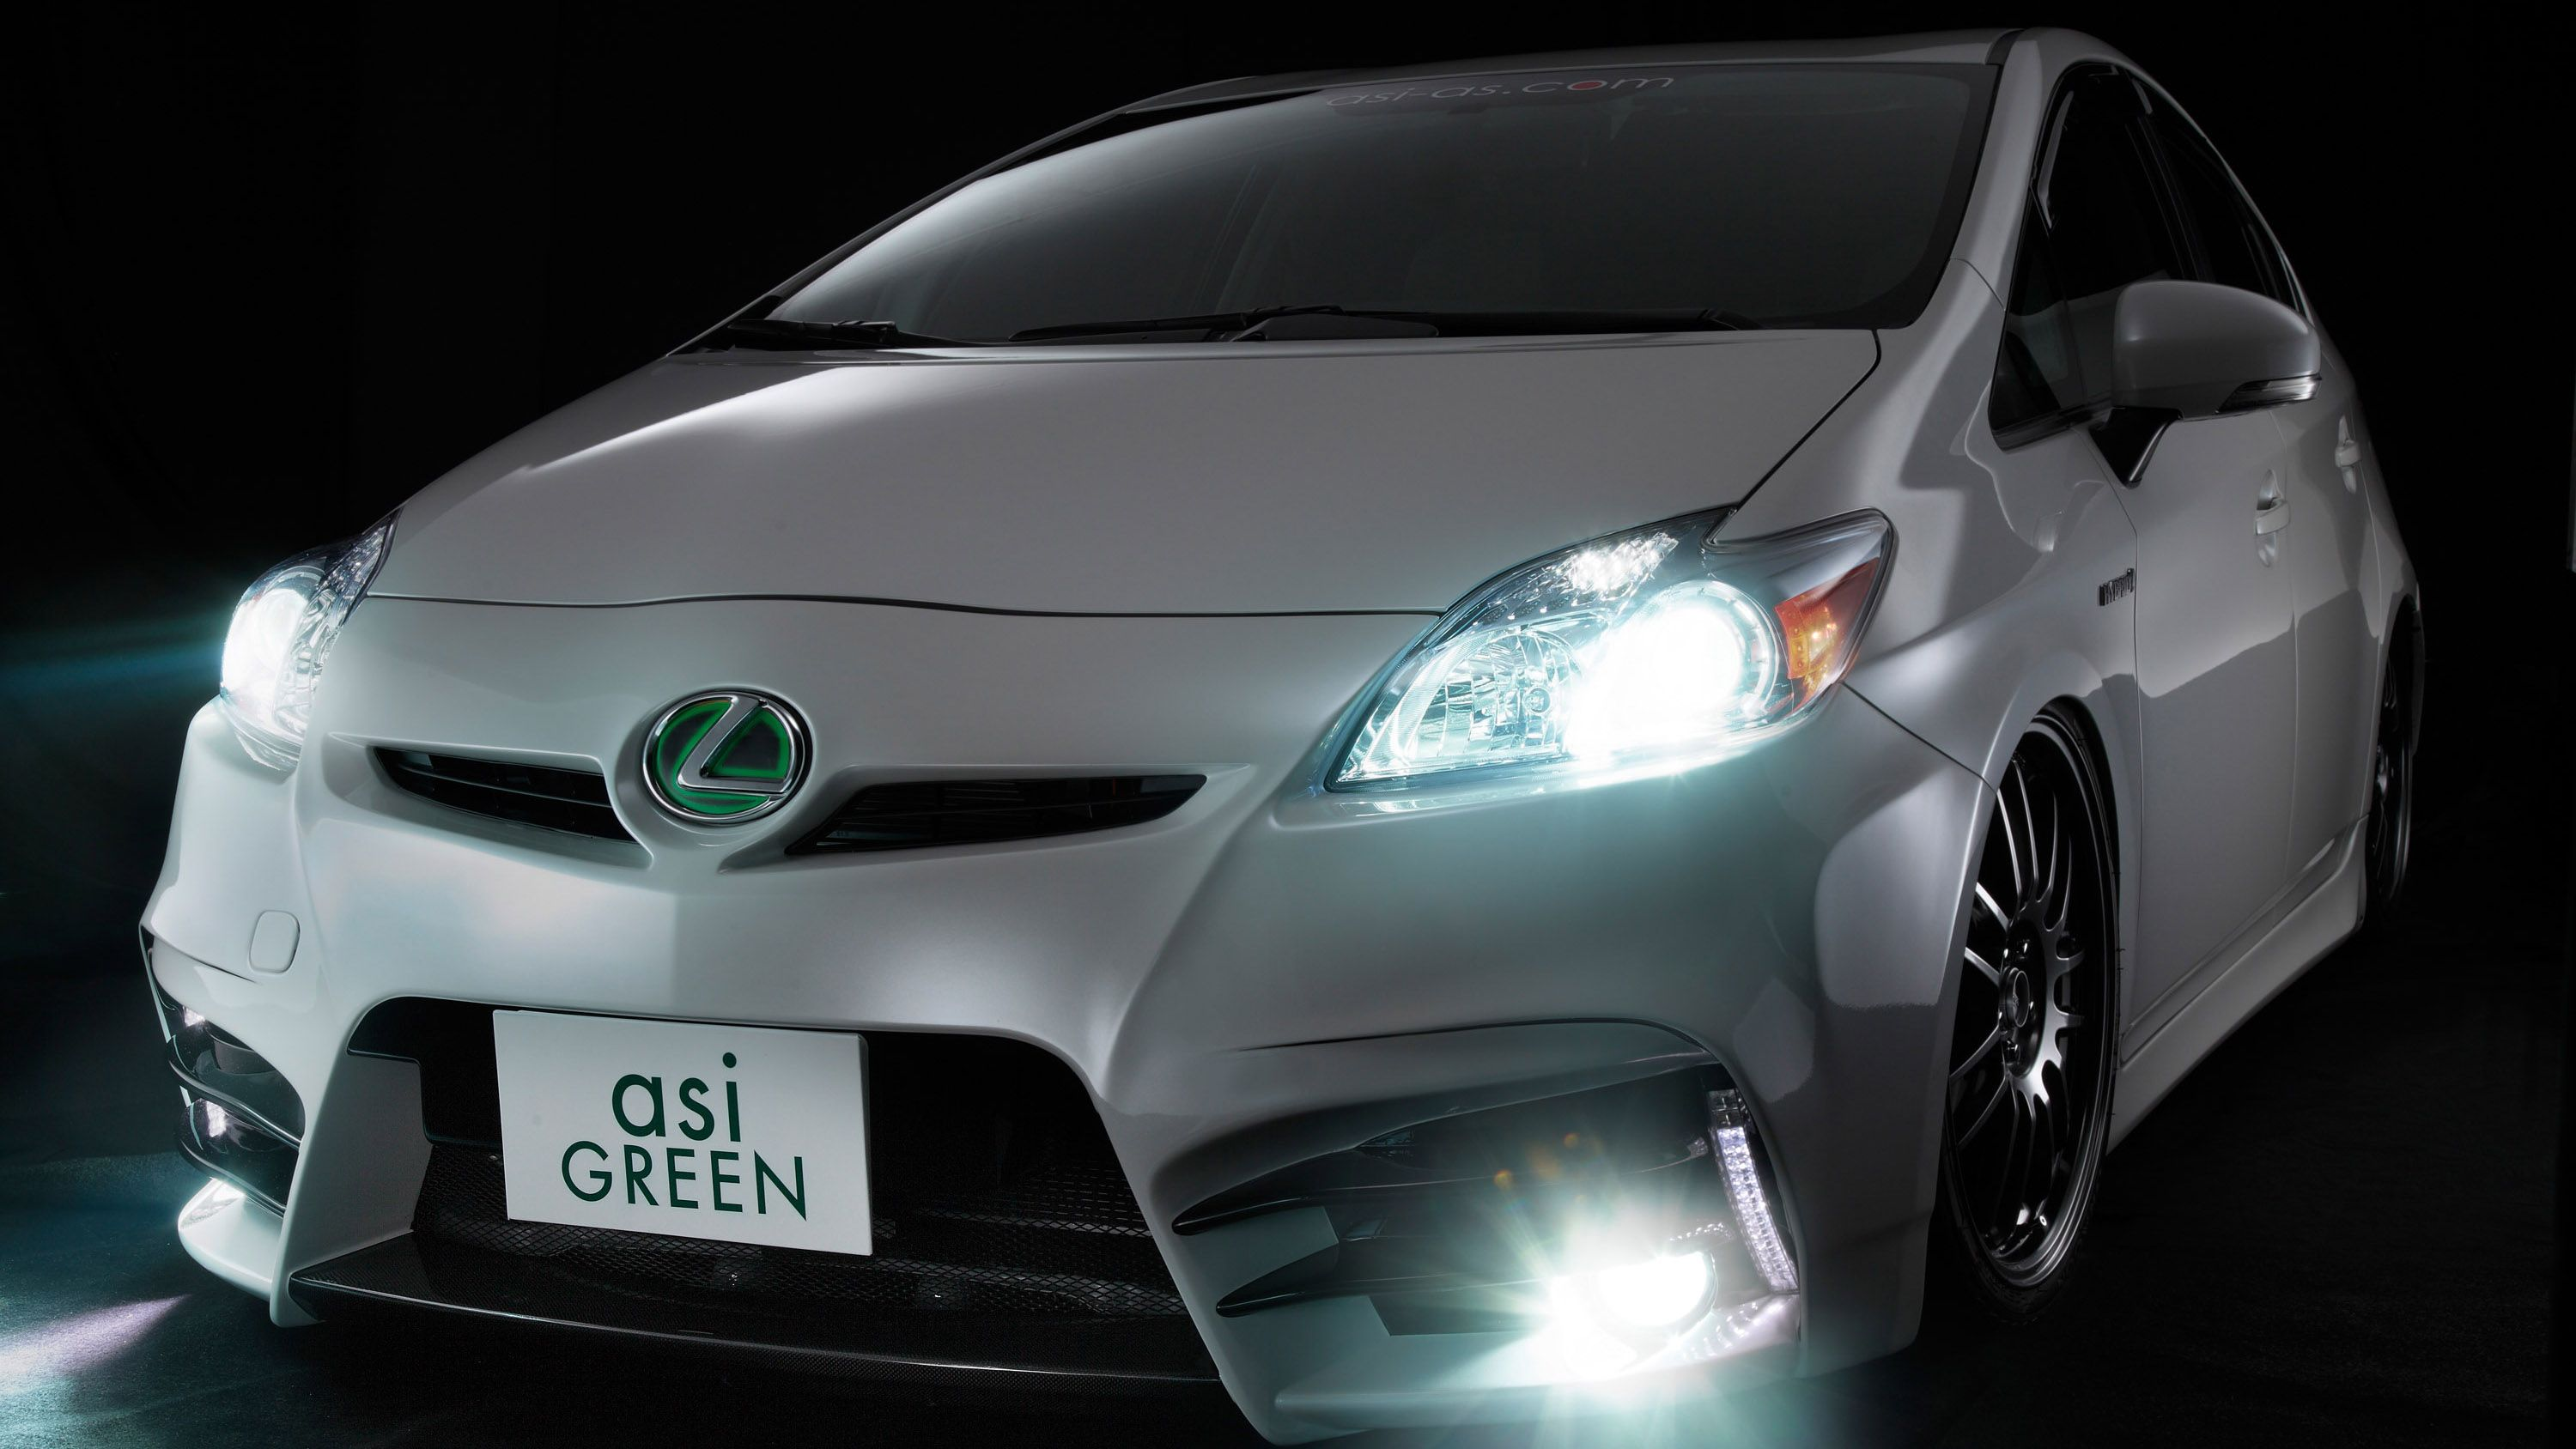 Toyota Prius 2010 Badged As Lexus Customized By Asi Green